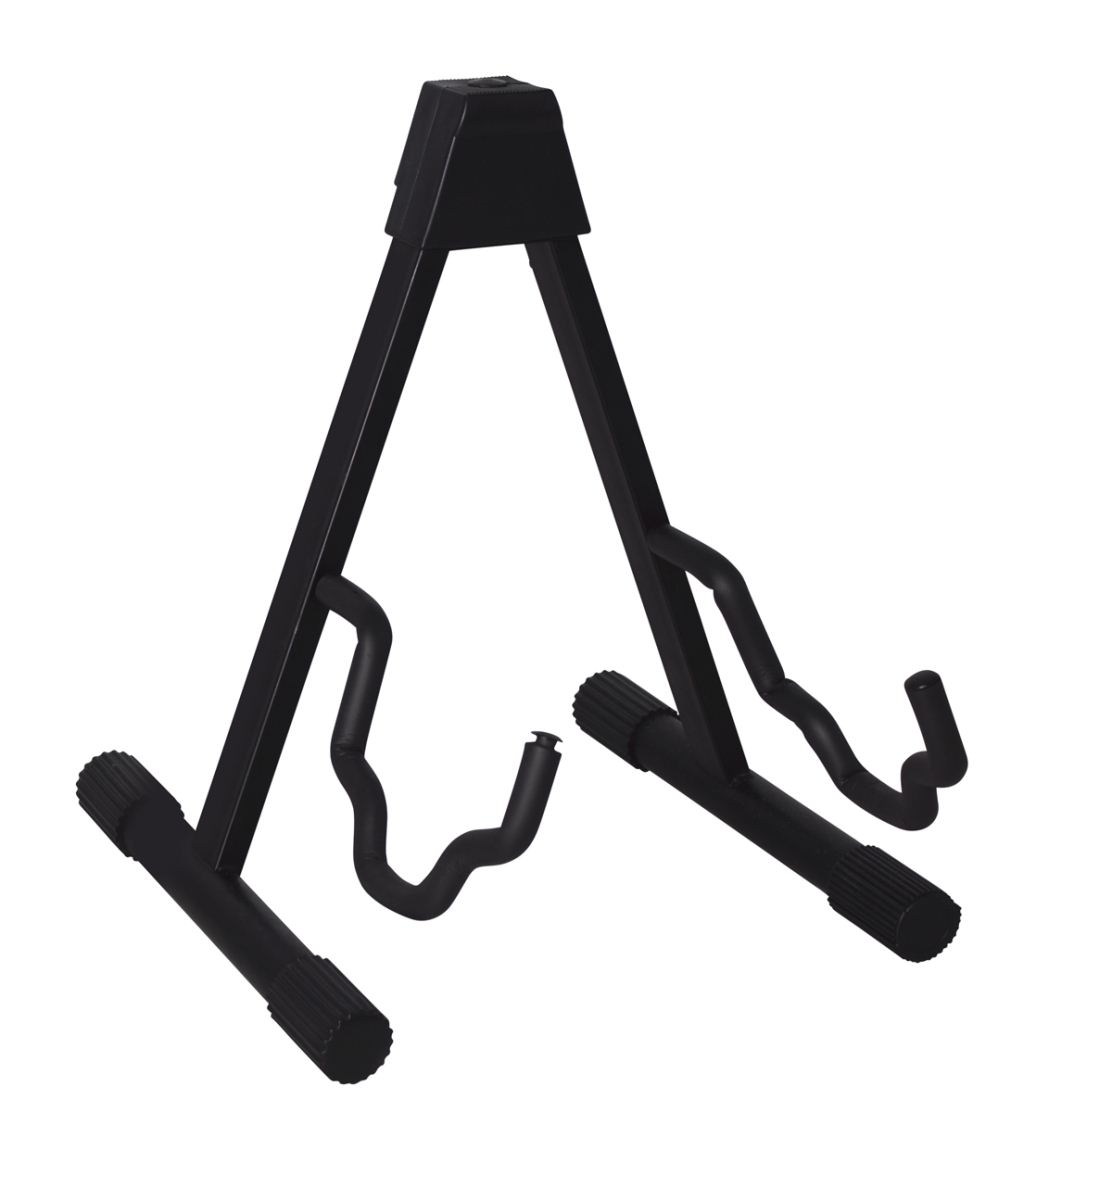 Gator Frameworks GFW-GTRA-4000 Adjustable Compact A-Style Guitar Stand with Rubber Padding